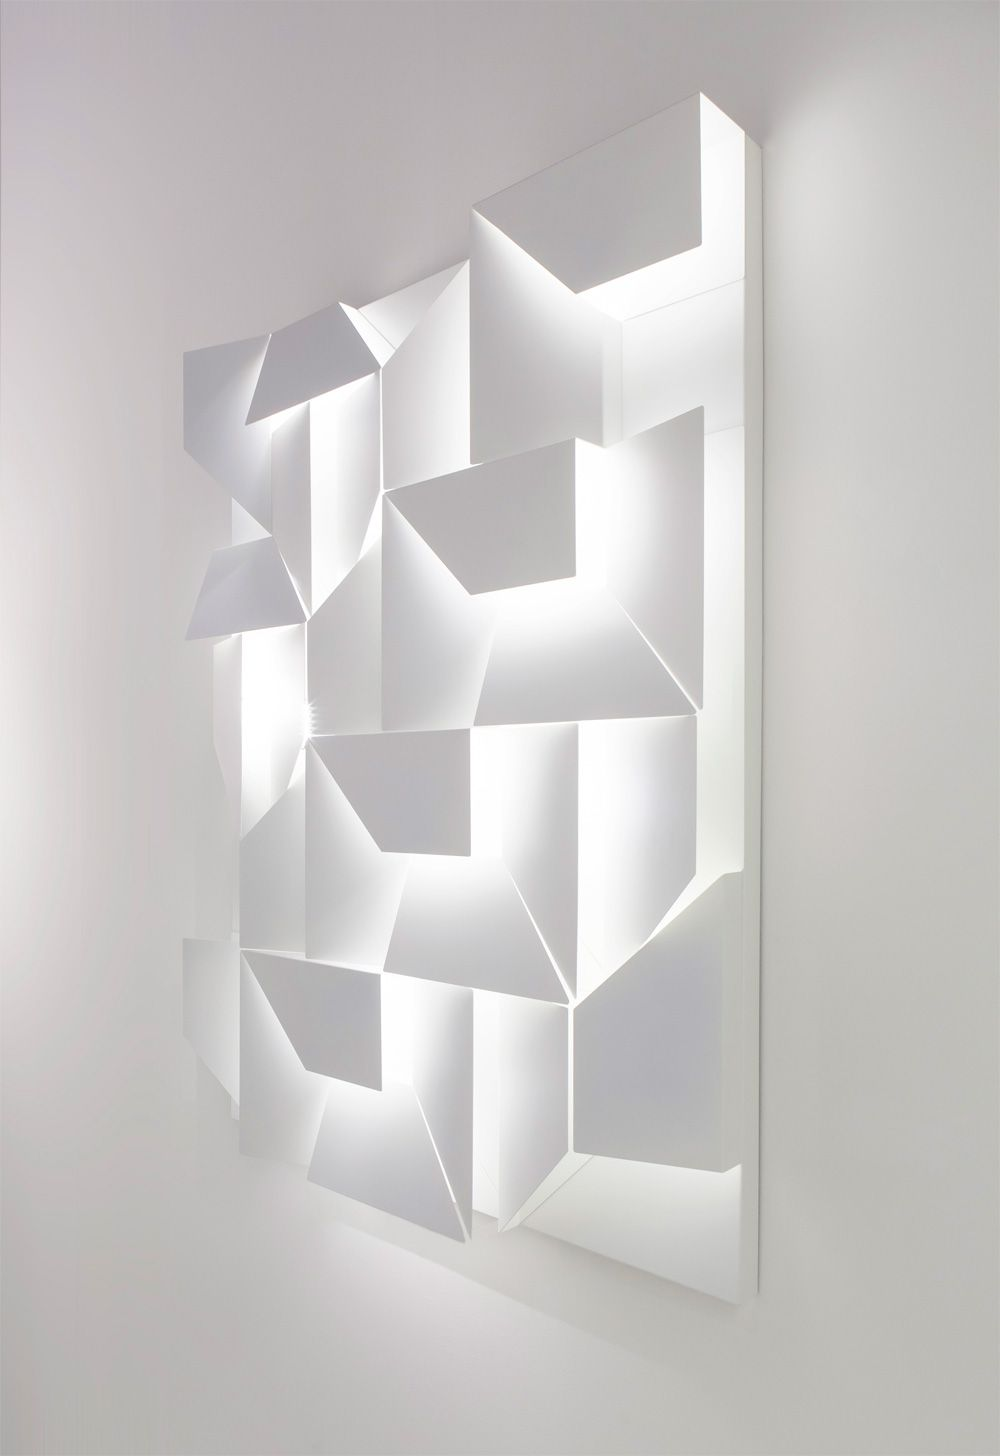 Inspirational Wall Shadows is an interesting project by the Lebanese designer Charles Kalpakian for the Italian lighting pany Omikron Design which has resulted in a